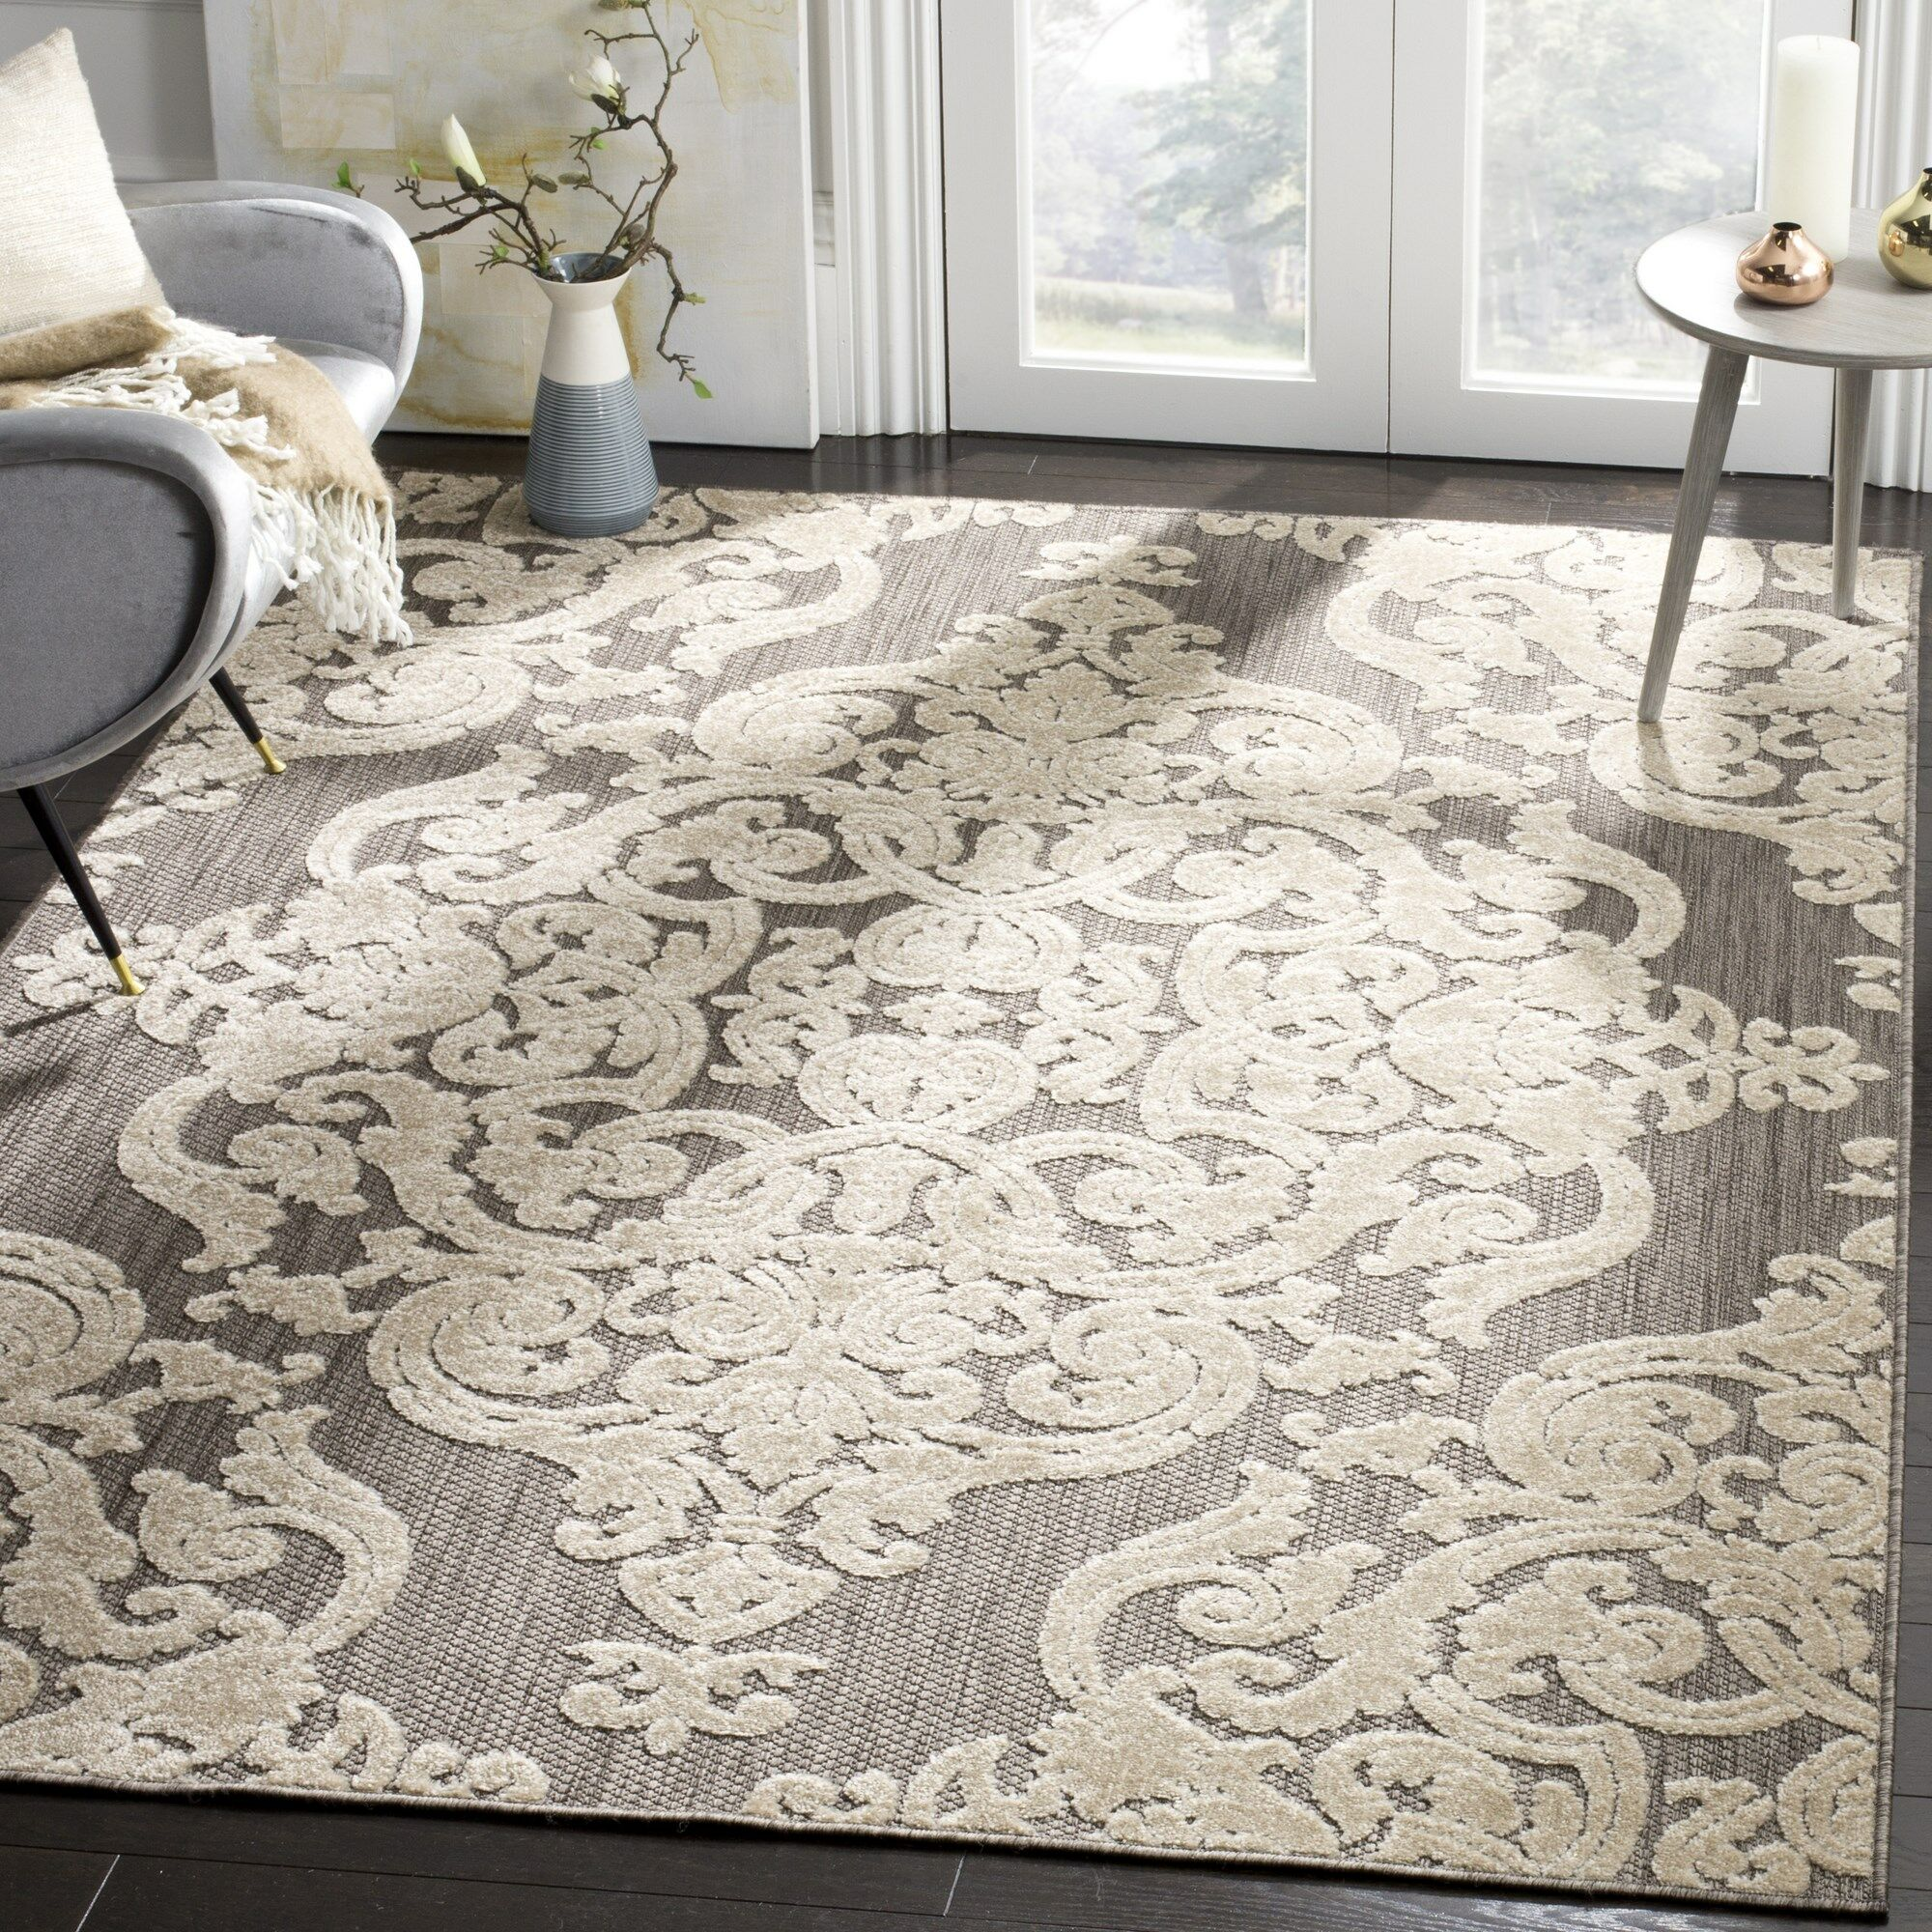 Lievin Taupe Area Rug Rug Size: Rectangle 8' x 11'2